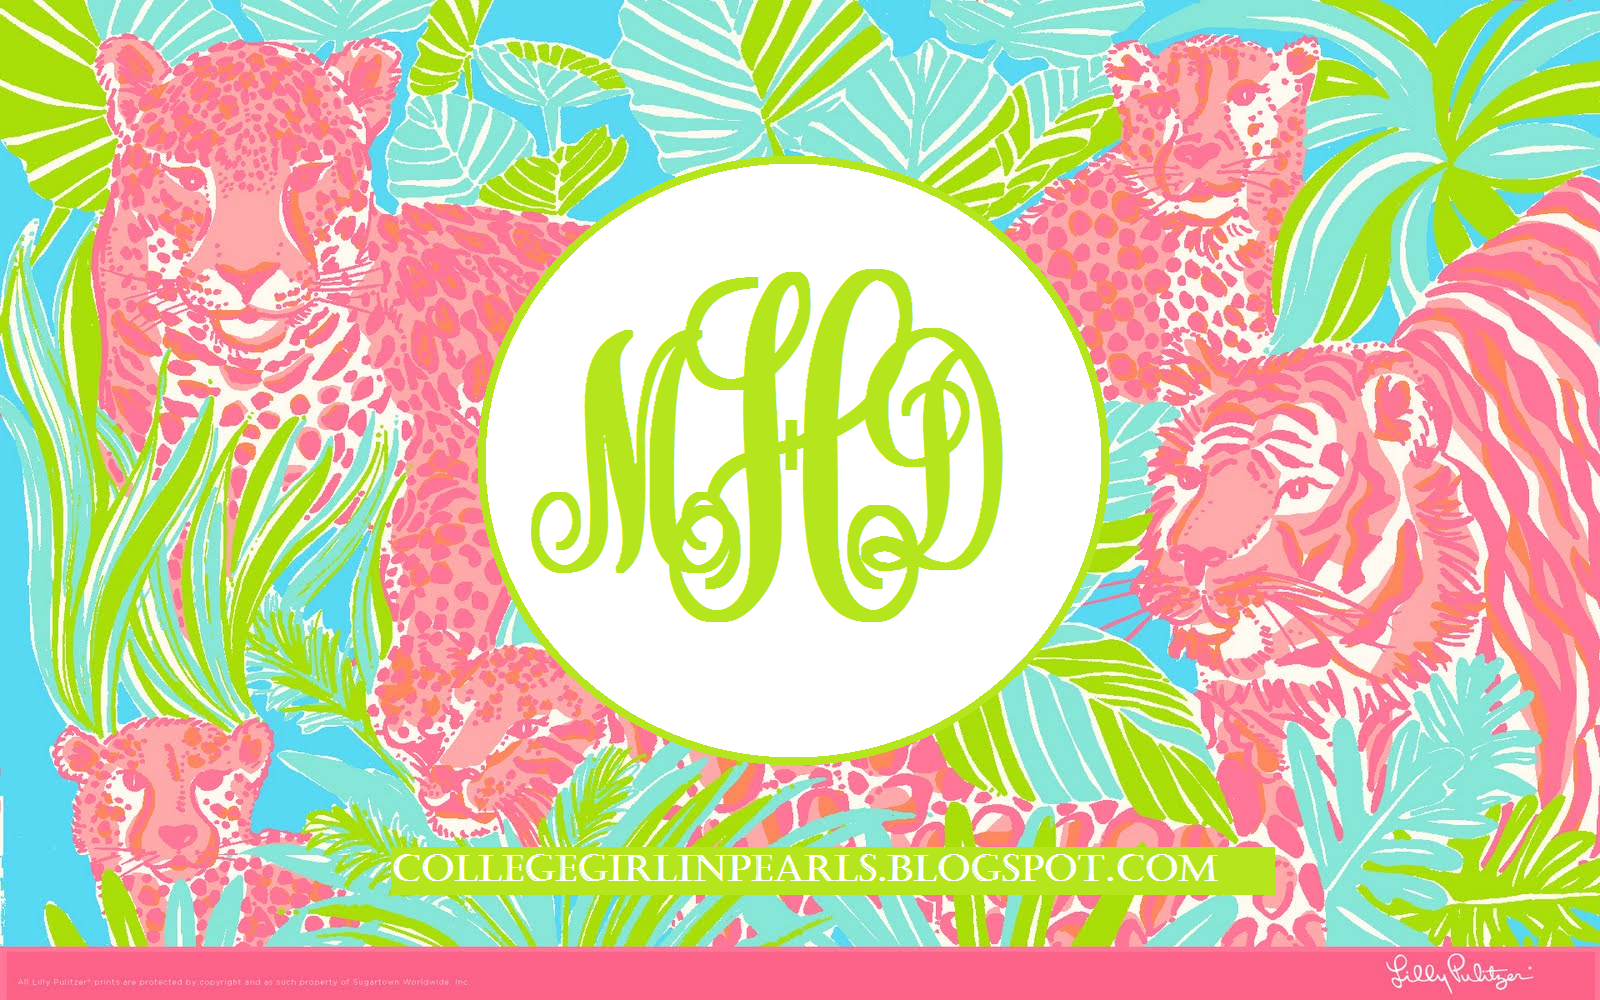 College Girl in Pearls: DIY Monogram Desktop Backgrounds! (Using Microsoft Paint)